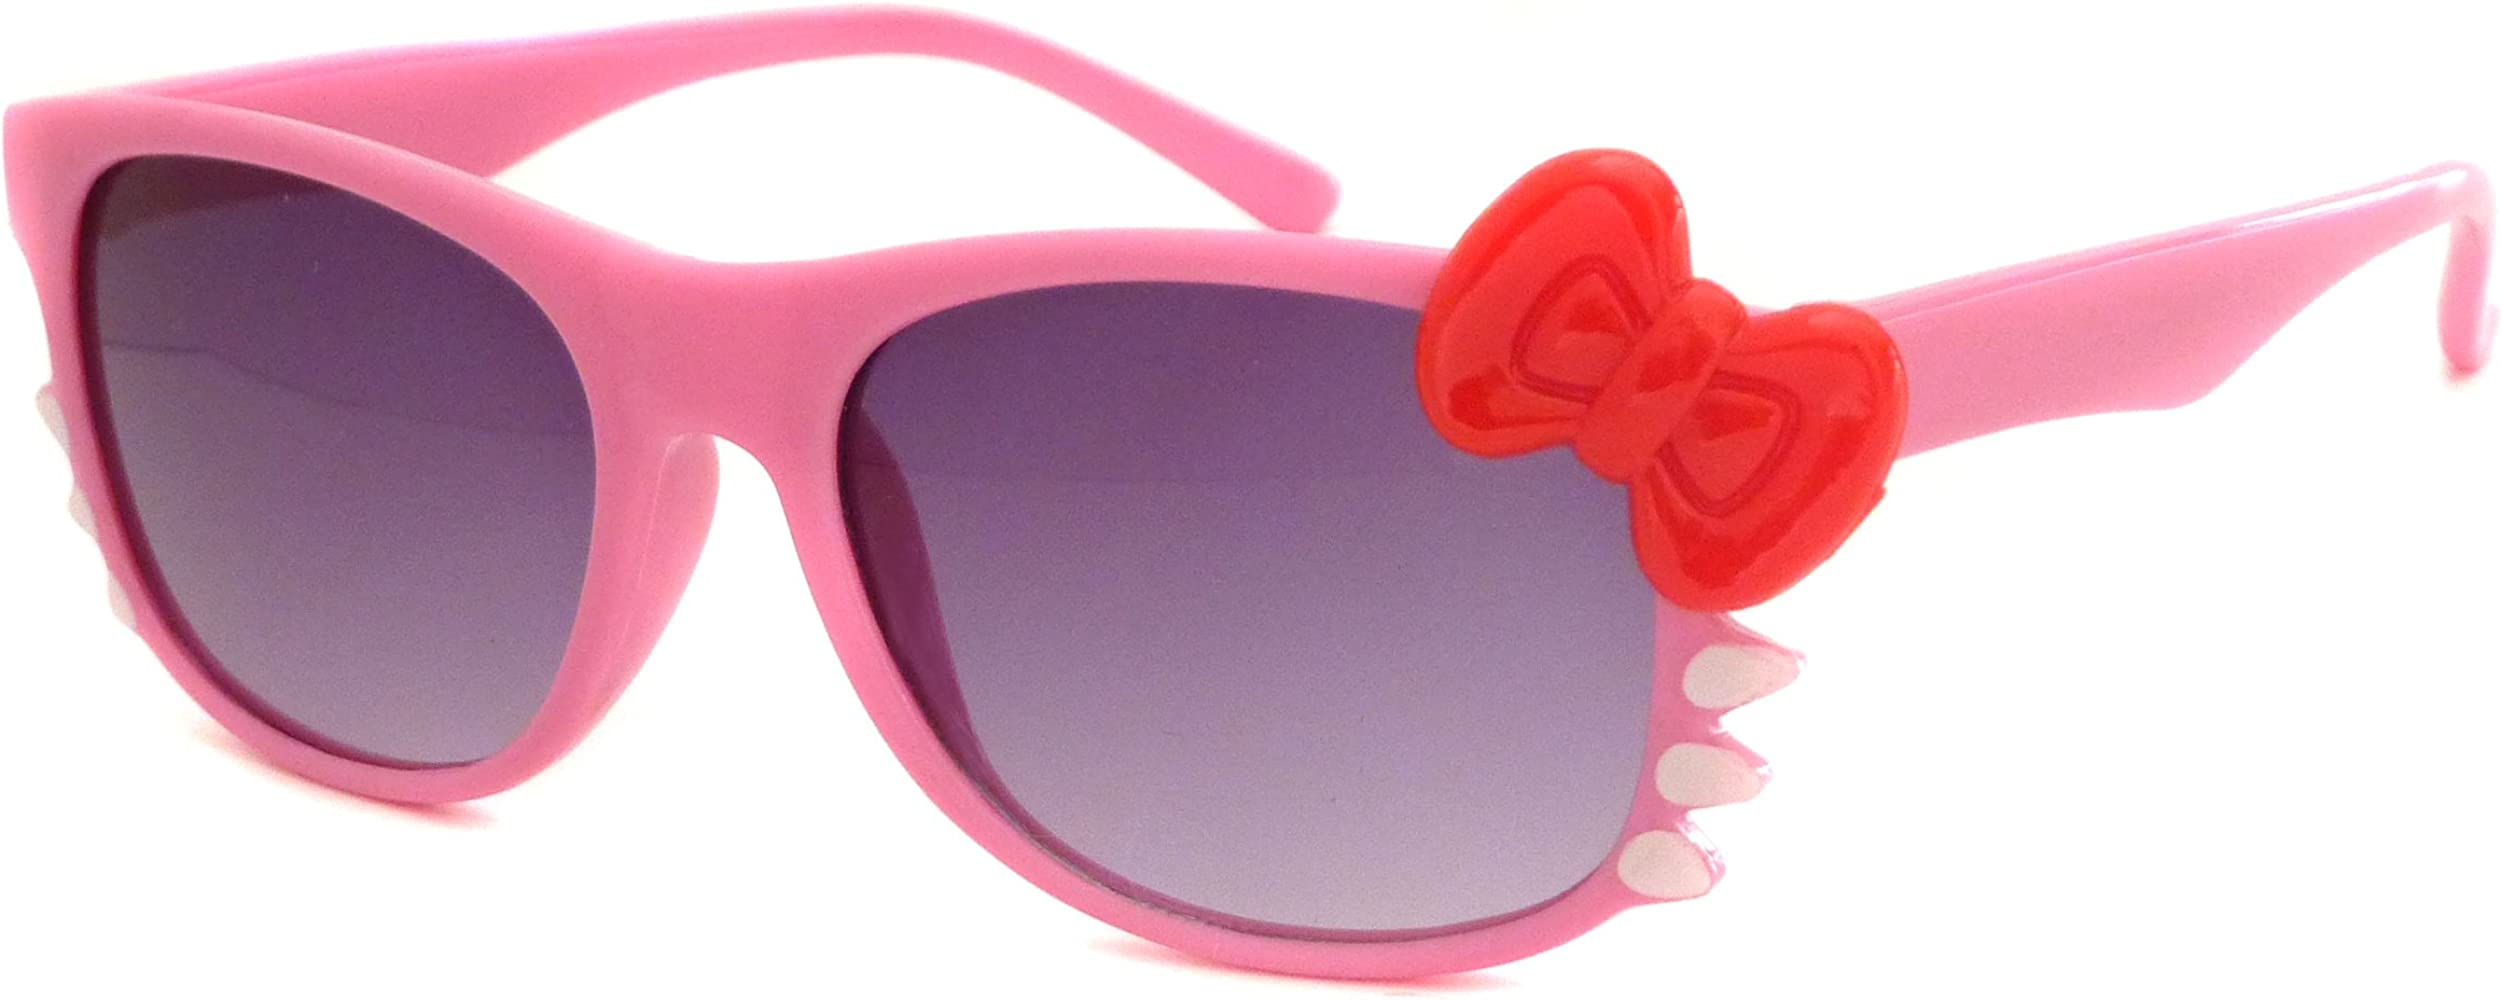 3eb8d41ff HELLO Kitty Style Kids Baby Children Girl Sunglasses (Age 1-5) PINK/